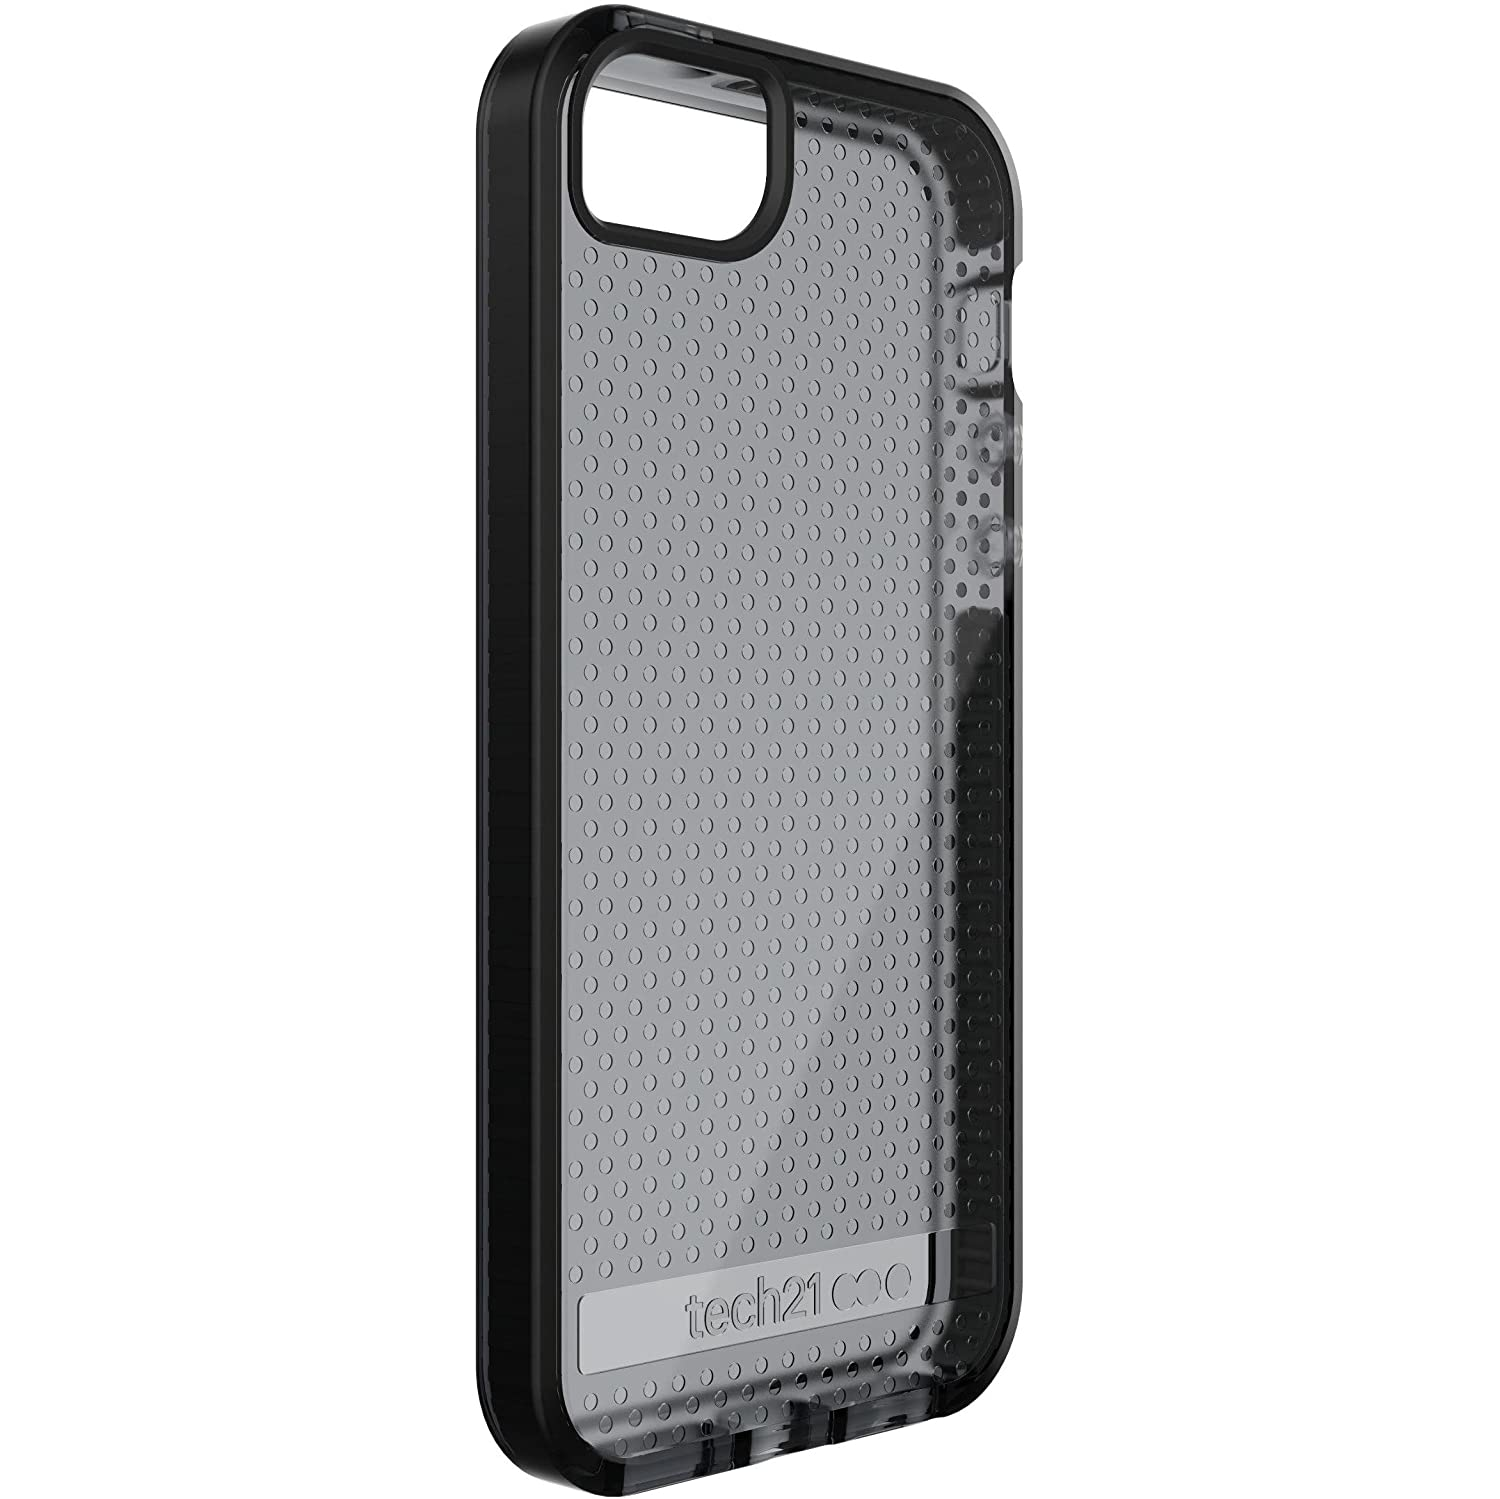 Tech21 Evo Mesh for iPhone 5/5s/SE - Smokey/Black